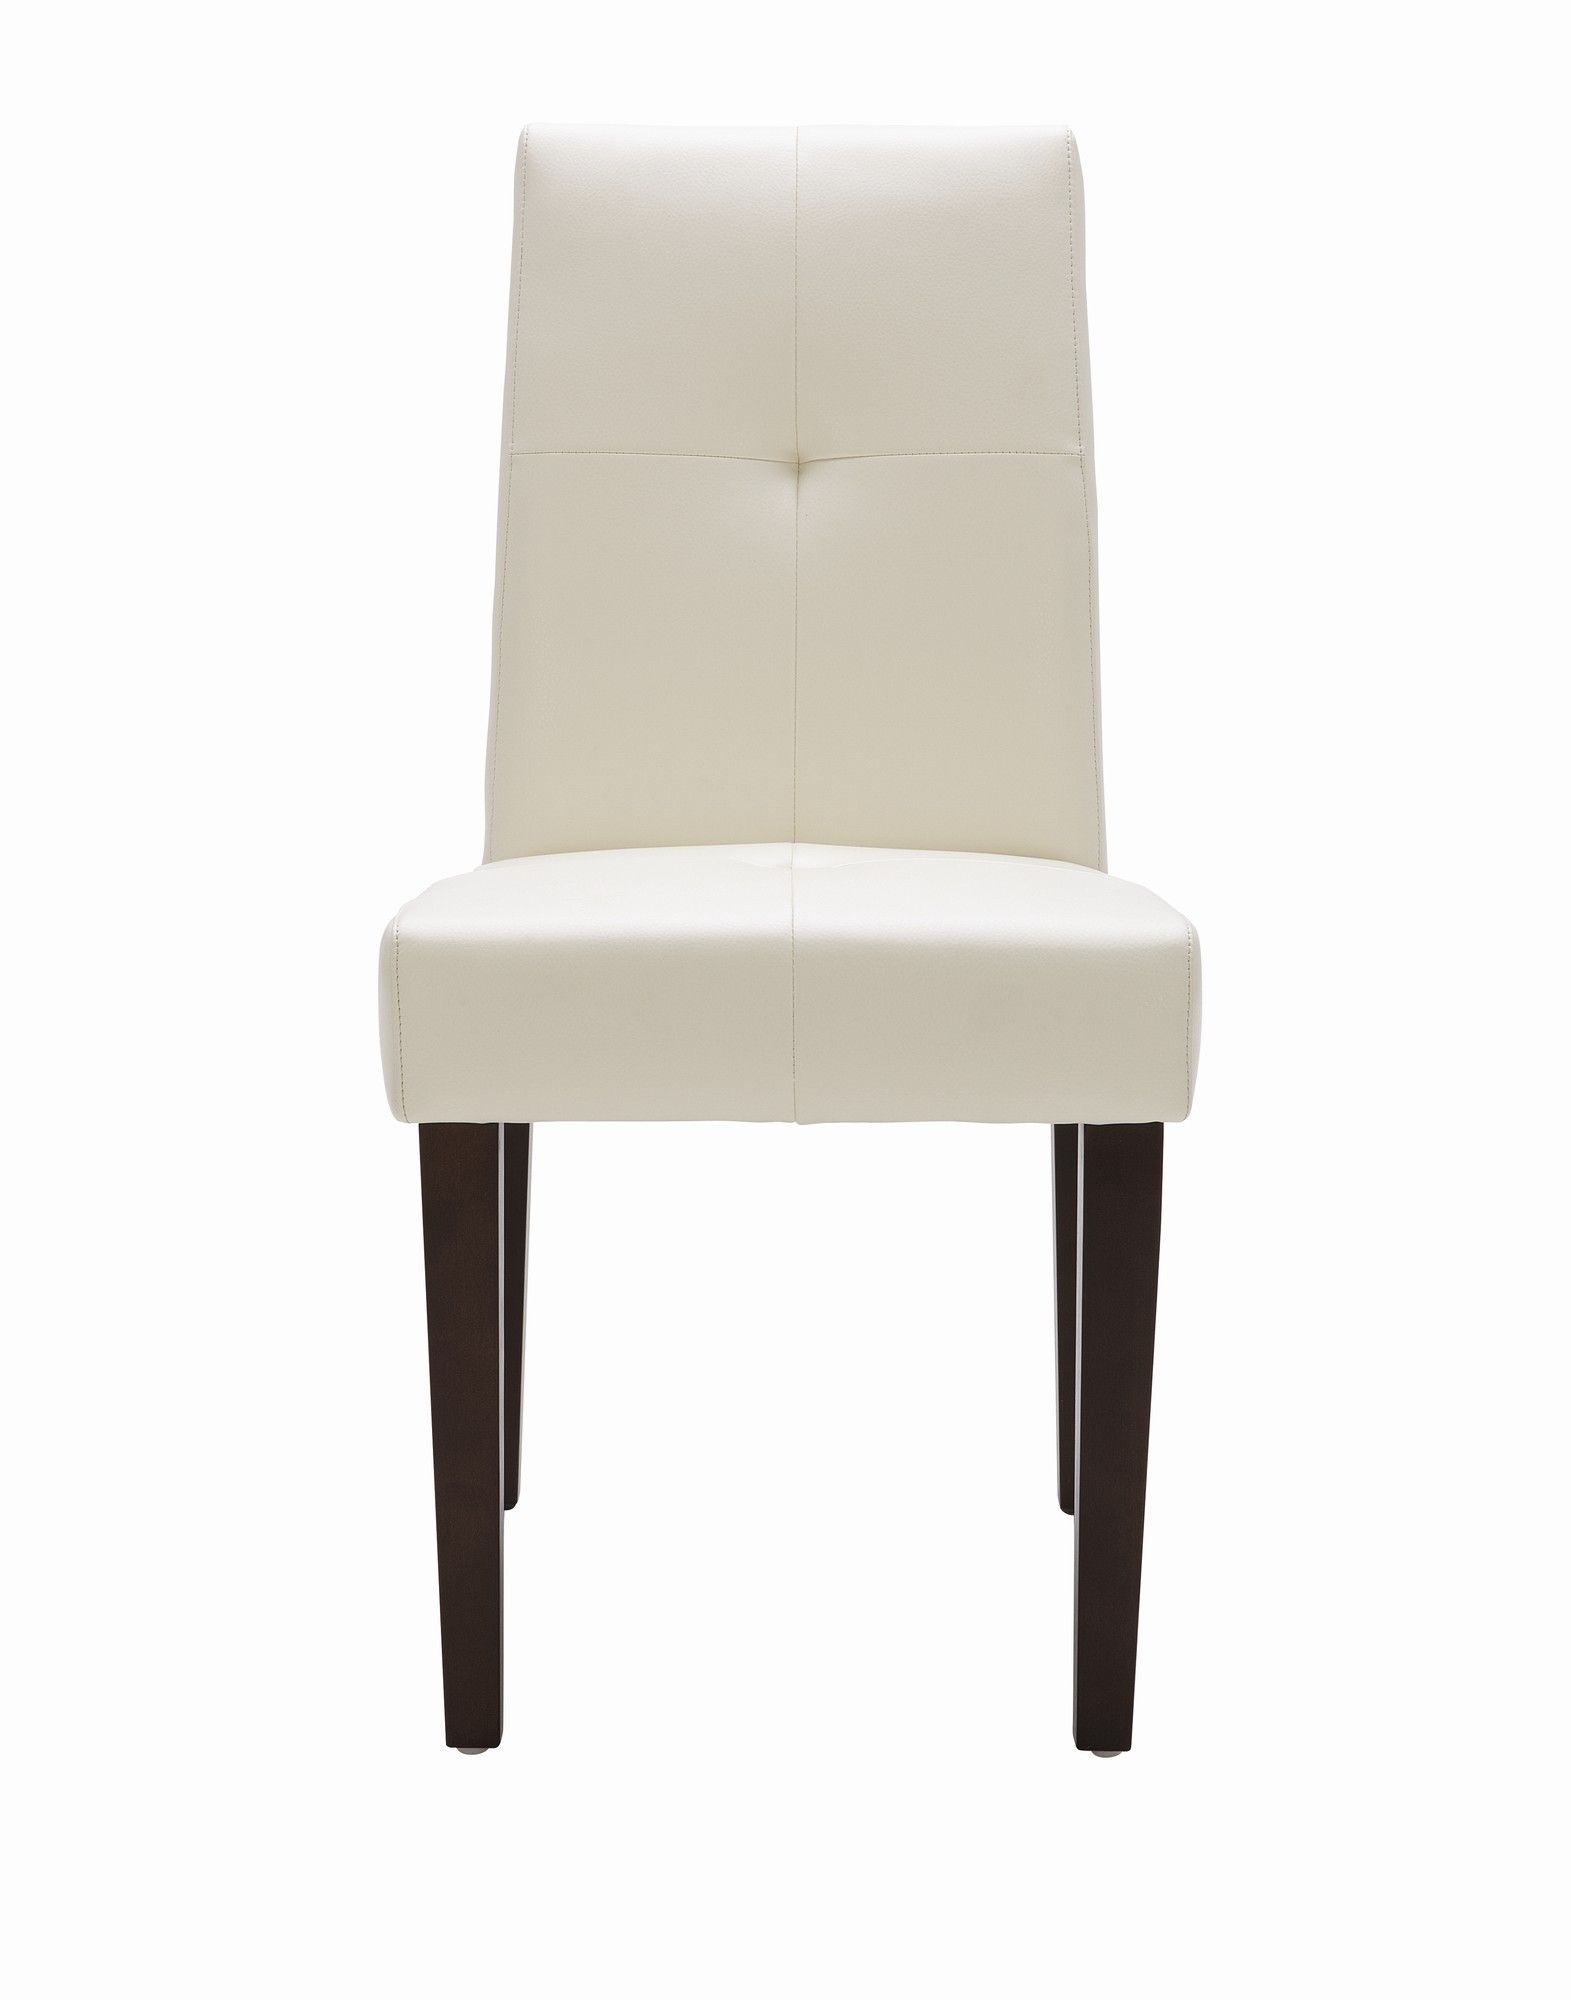 Outstanding Sunpan Modern Cleo Bonded Leather Dining Chair Chairs In Cjindustries Chair Design For Home Cjindustriesco